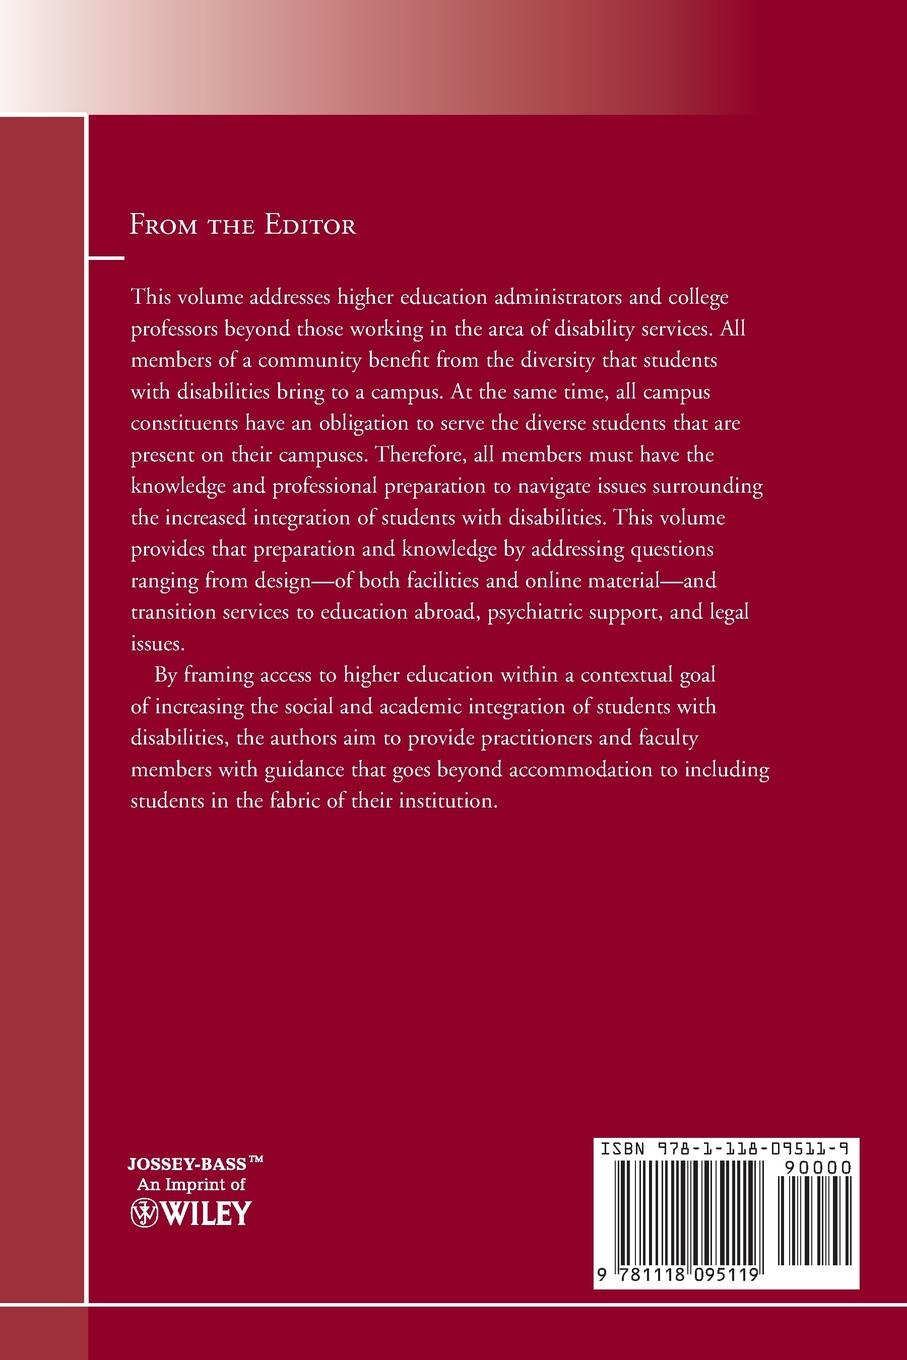 Student Services, SS Fostering the Increased Integration of Students with Disabilities. New Directions for Student Services, Number 134 shannon ellis e strategic planning in student affairs new directions for student services number 132